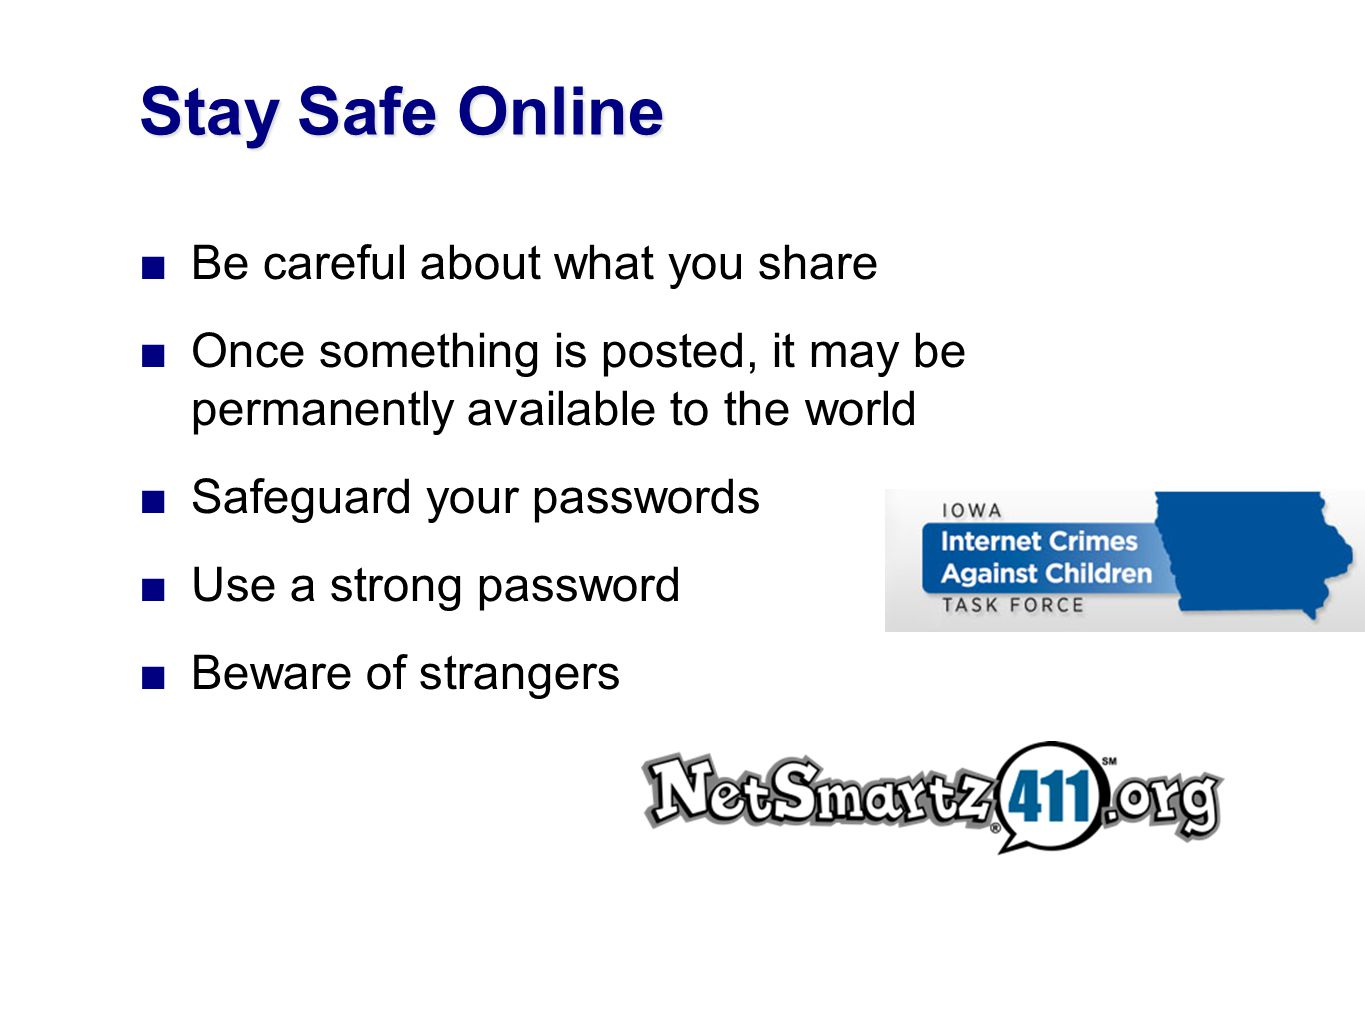 Be careful about what you share Once something is posted, it may be permanently available to the world Safeguard your passwords Use a strong password Beware of strangers Stay Safe Online